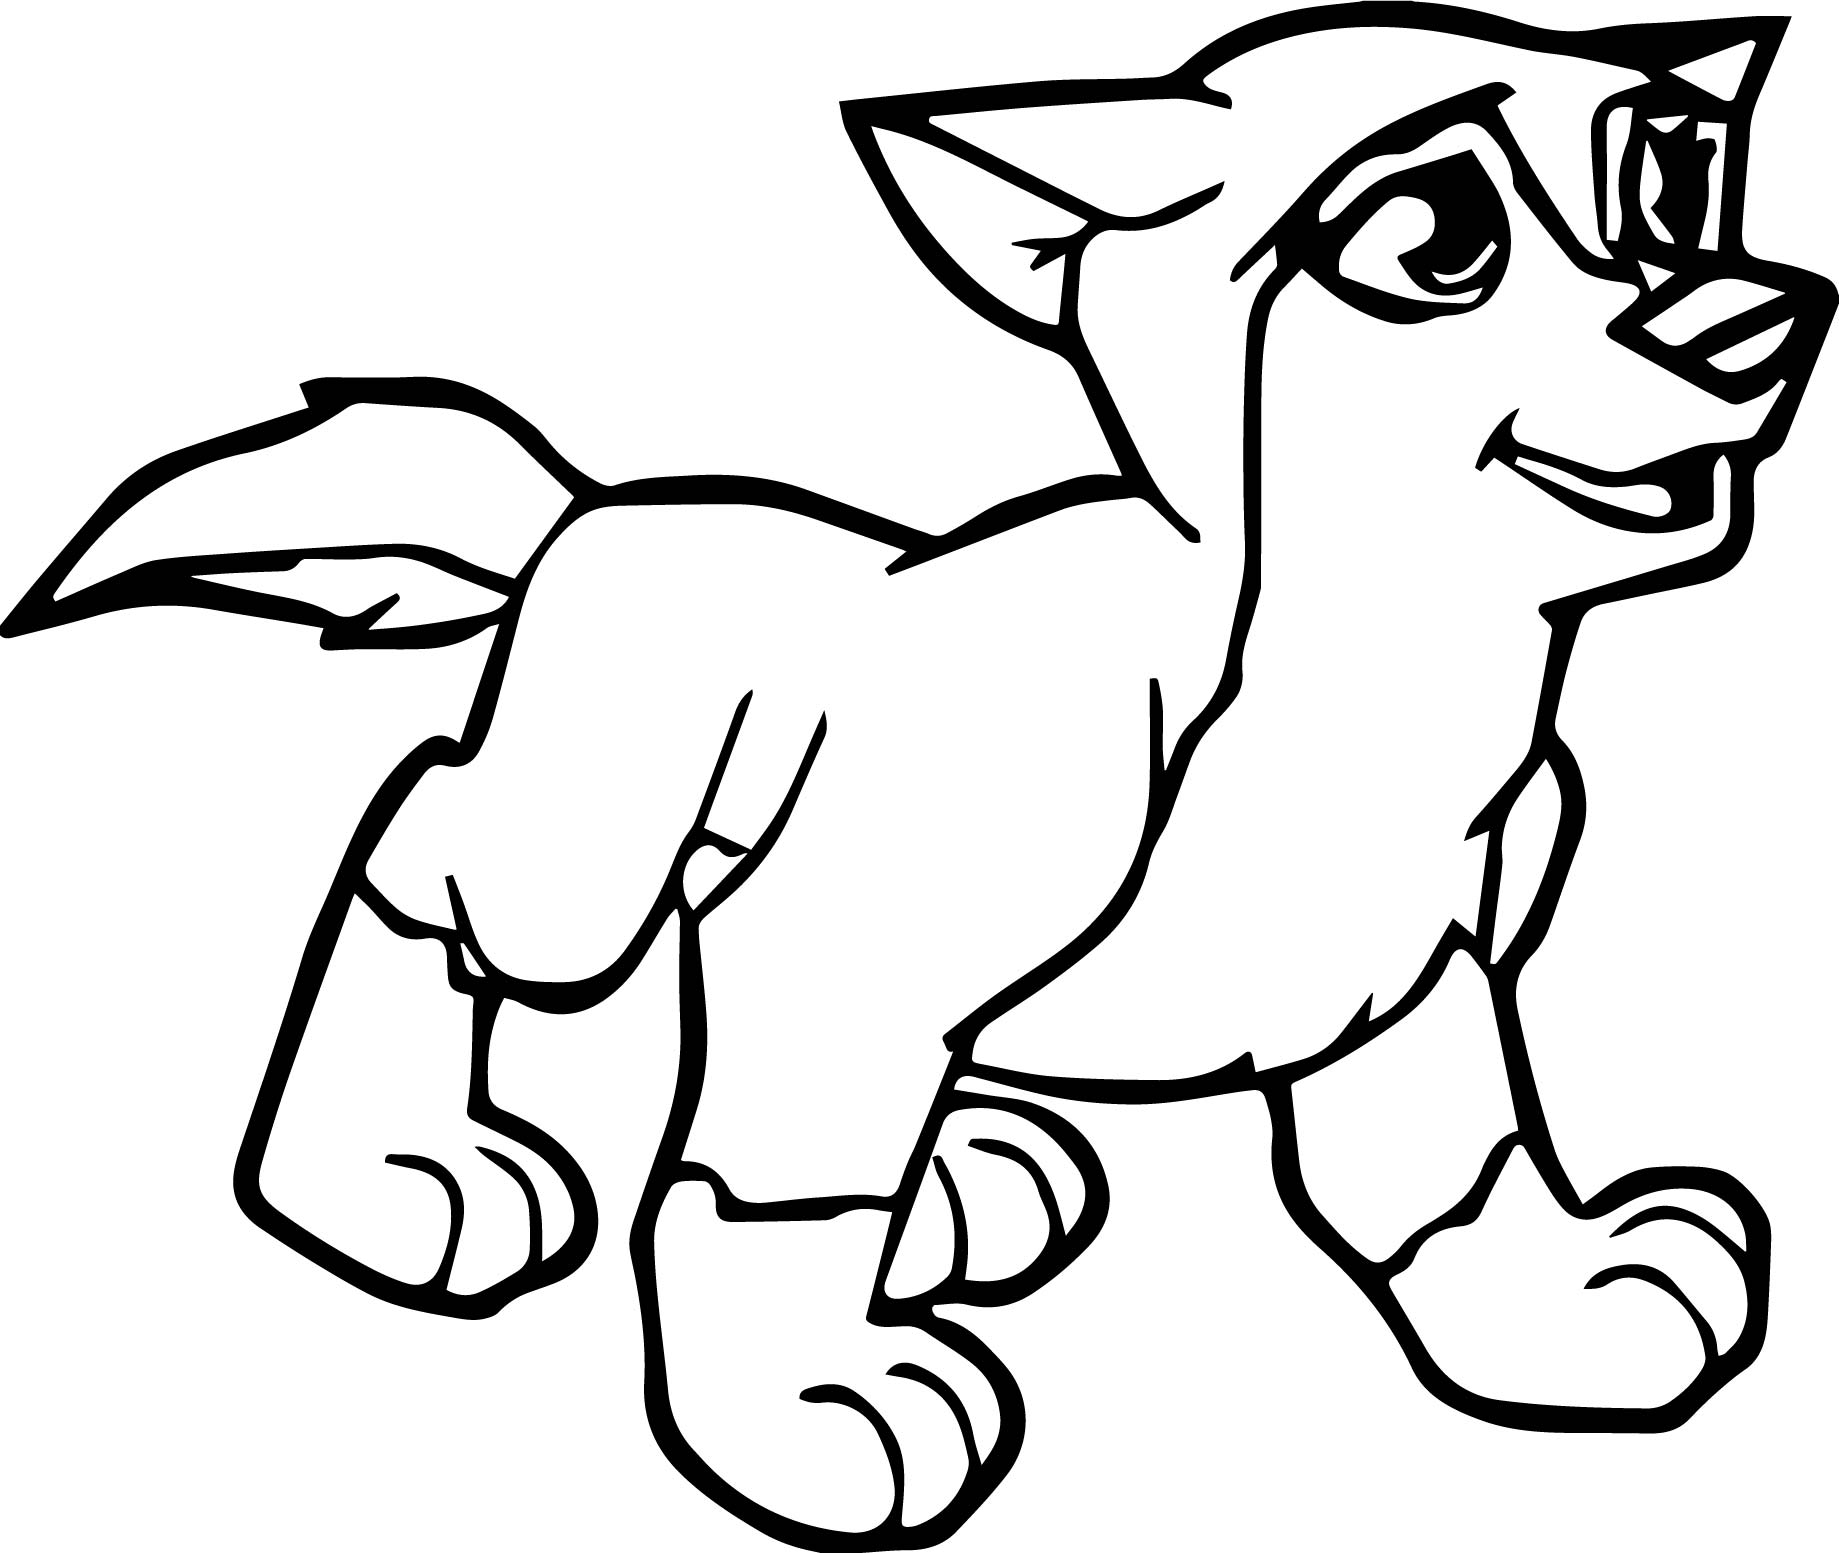 Wolf Coloring Pages Cool Young Alpha And Omega Wolf Coloring Page  Wecoloringpage Inspiration Design